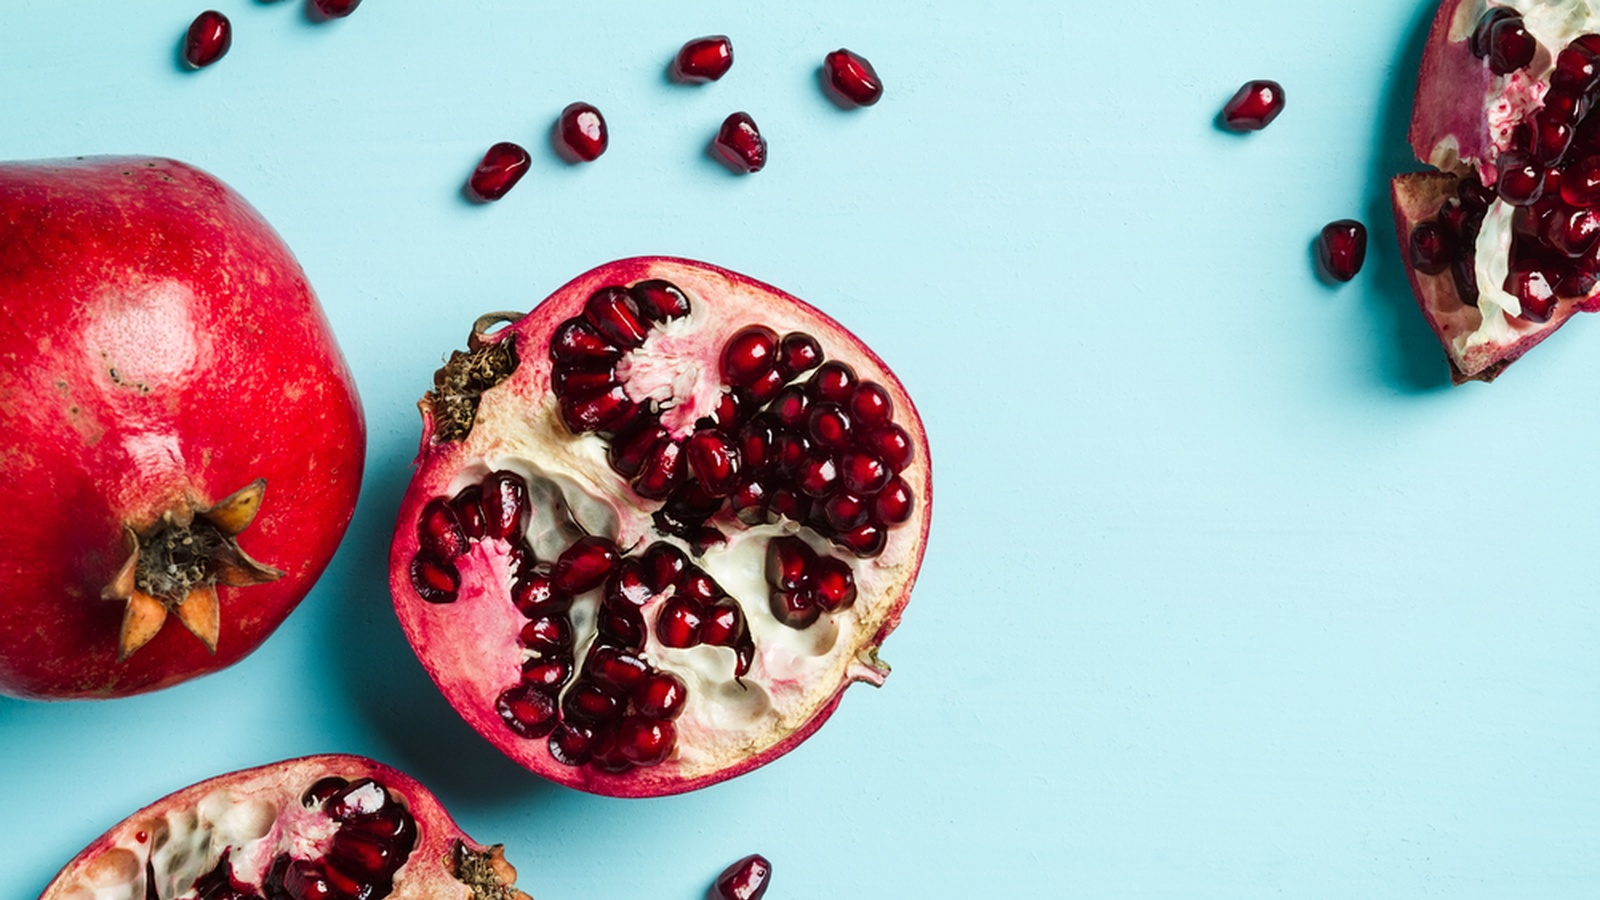 10 Antioxidant Foods Your Skin Will Love